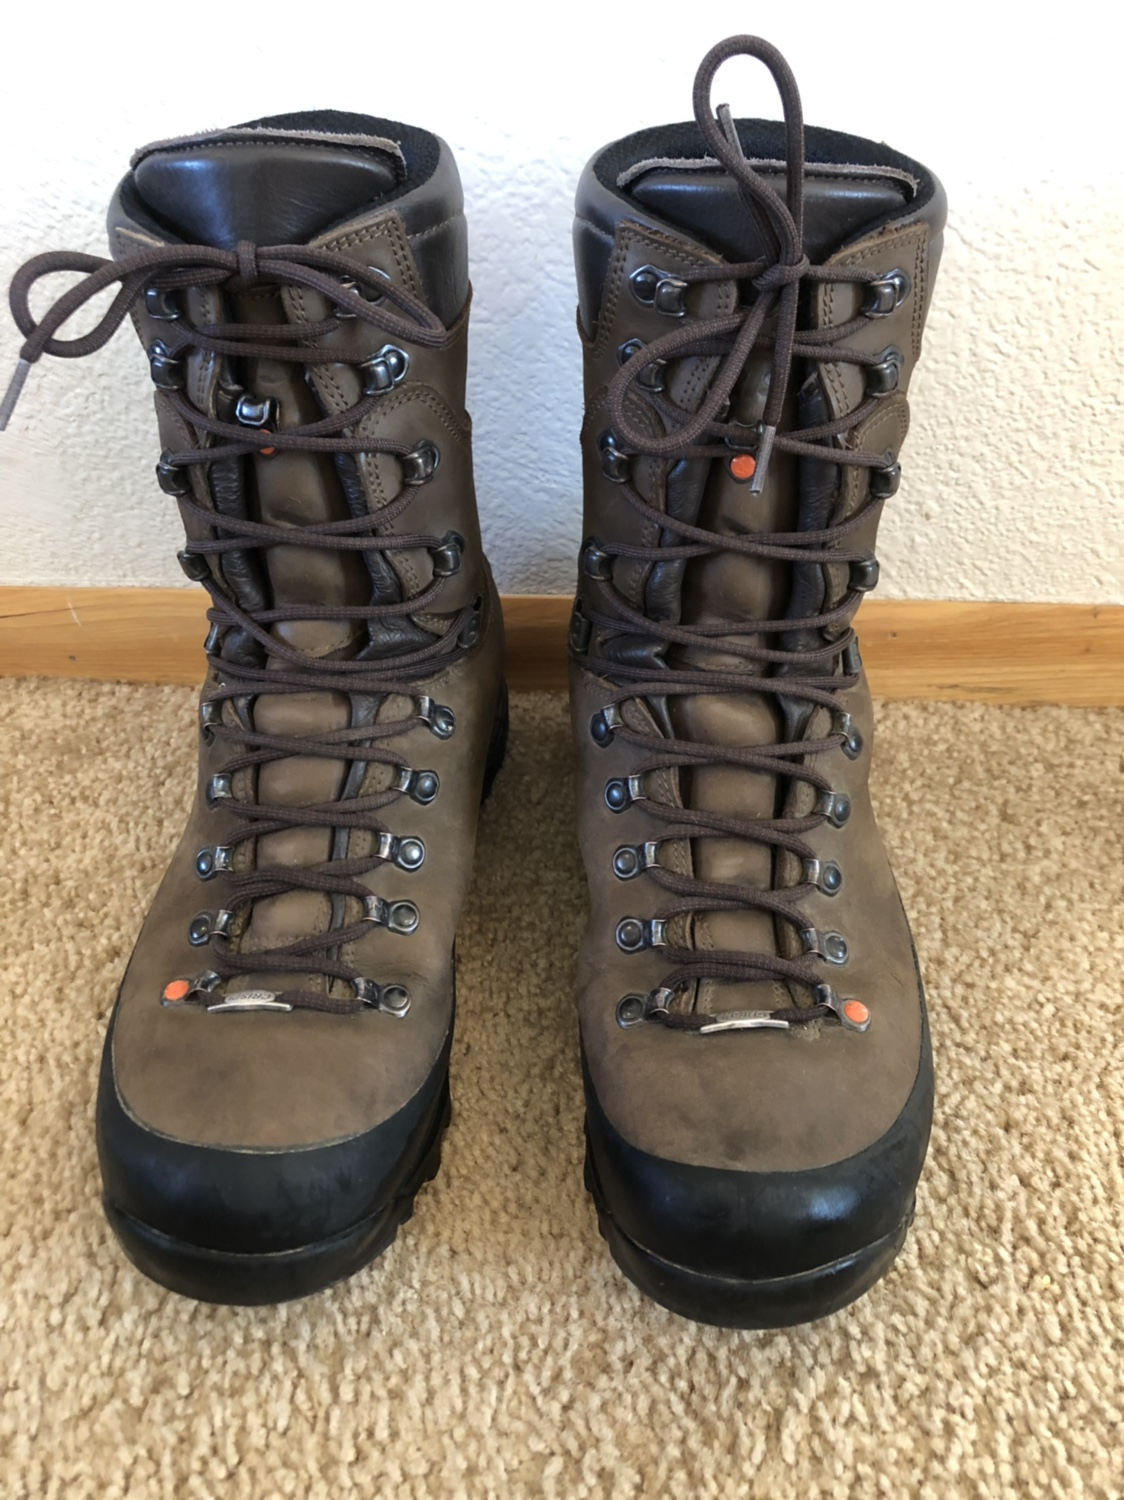 WTS - Crispi Guide GTX Size 11 Boots